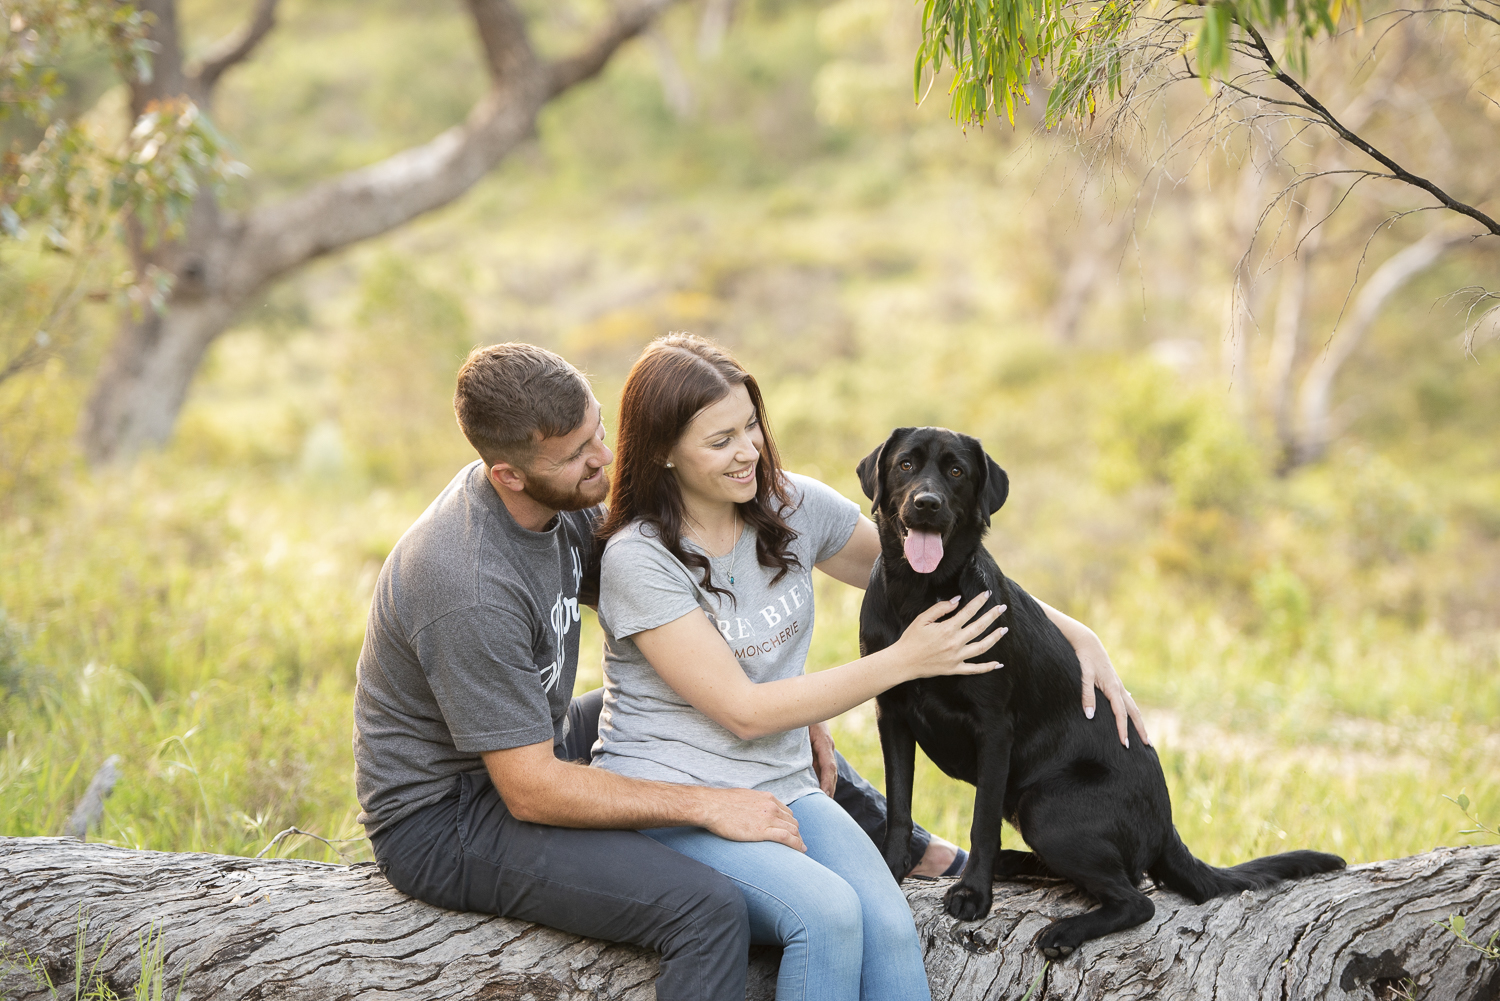 Bunbury Natural Engagement Portrait Photographer (11 of 13).jpg